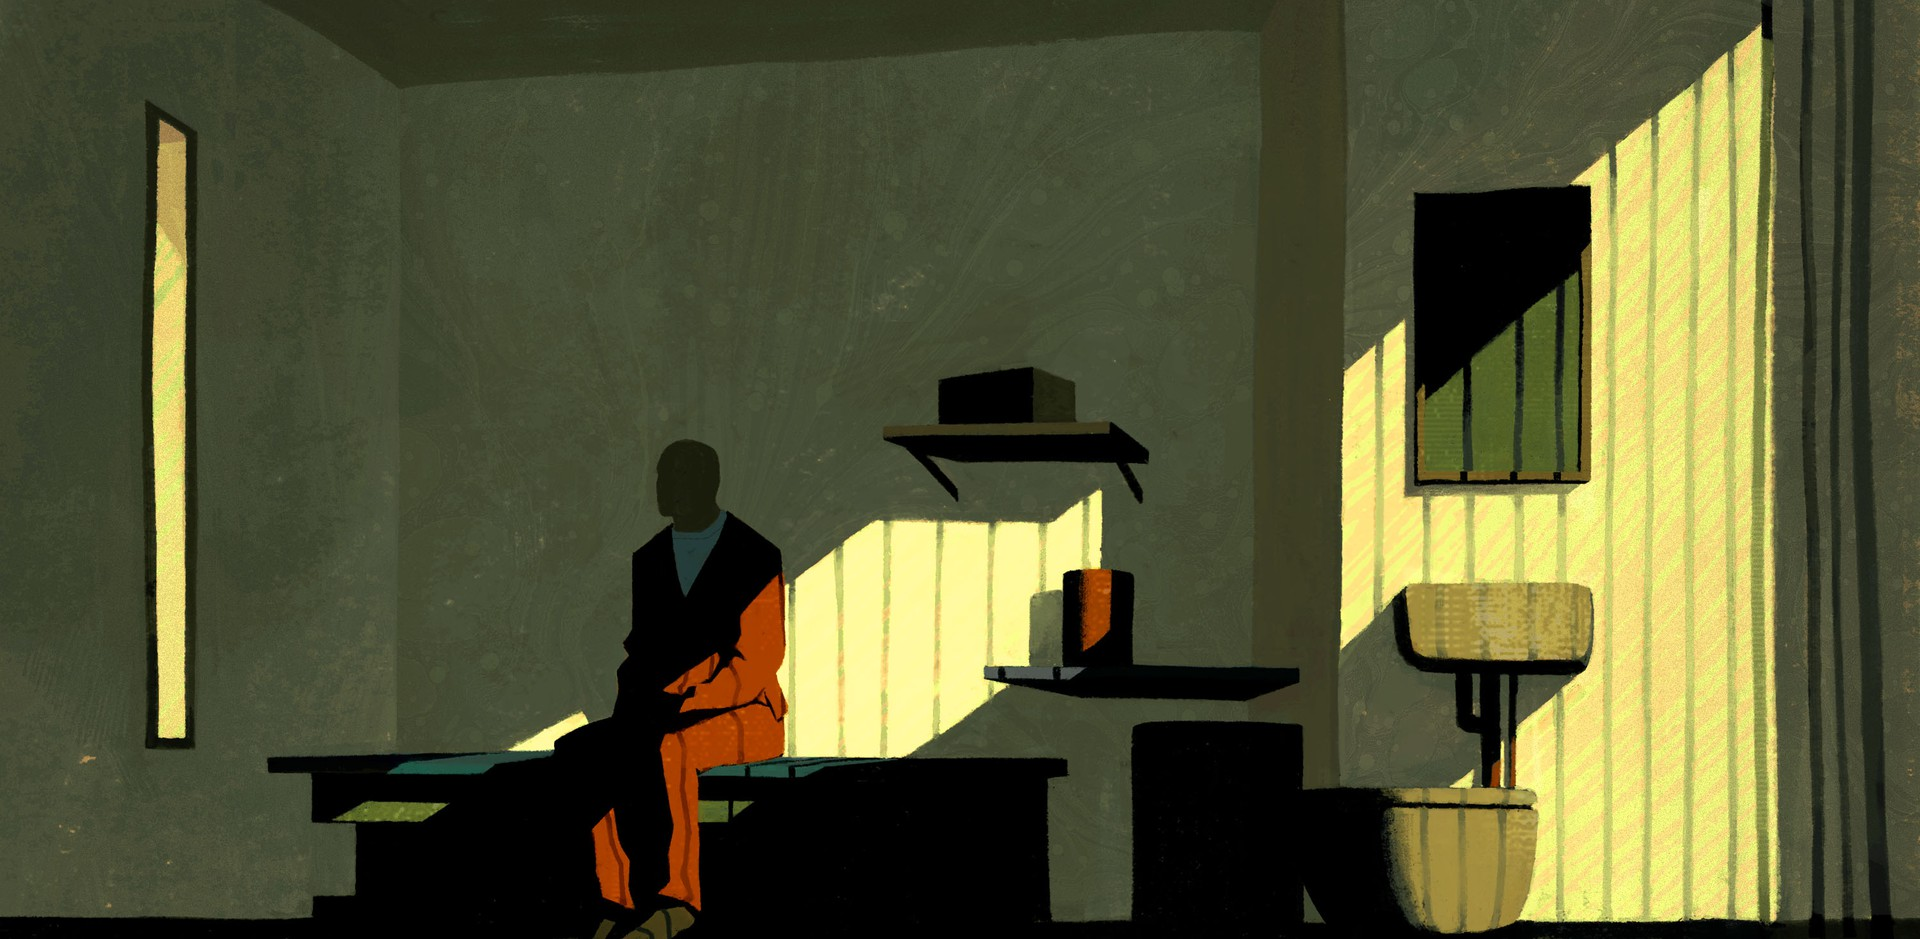 An illustration of a man in a prison uniform, sitting half in shadow in a cell